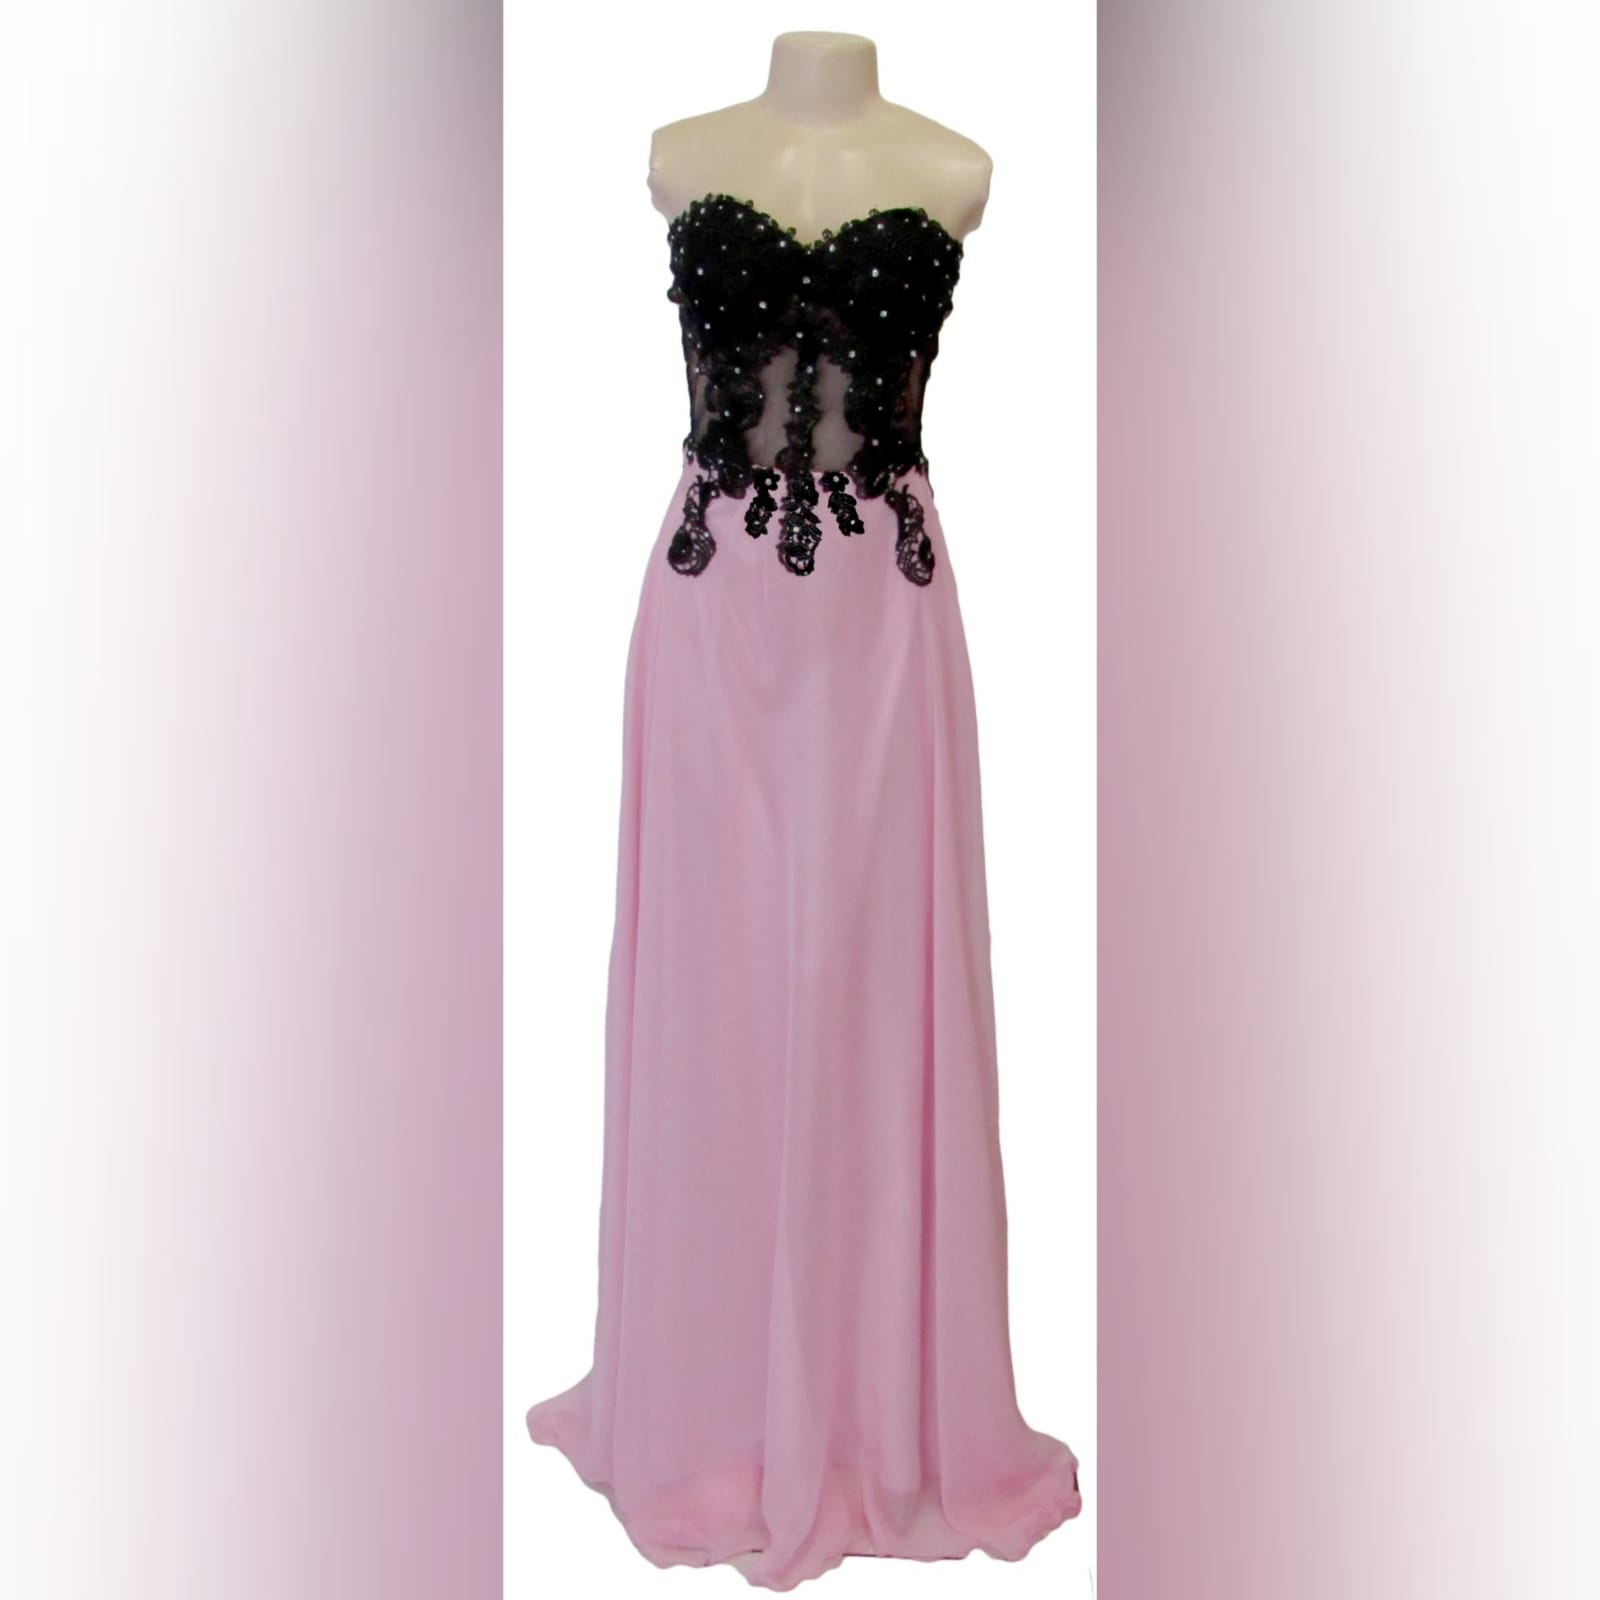 Pink and black illusion lace bodice boob tube prom dress 4 pink and black illusion lace bodice, boob tube prom dress detailed with silver beads.